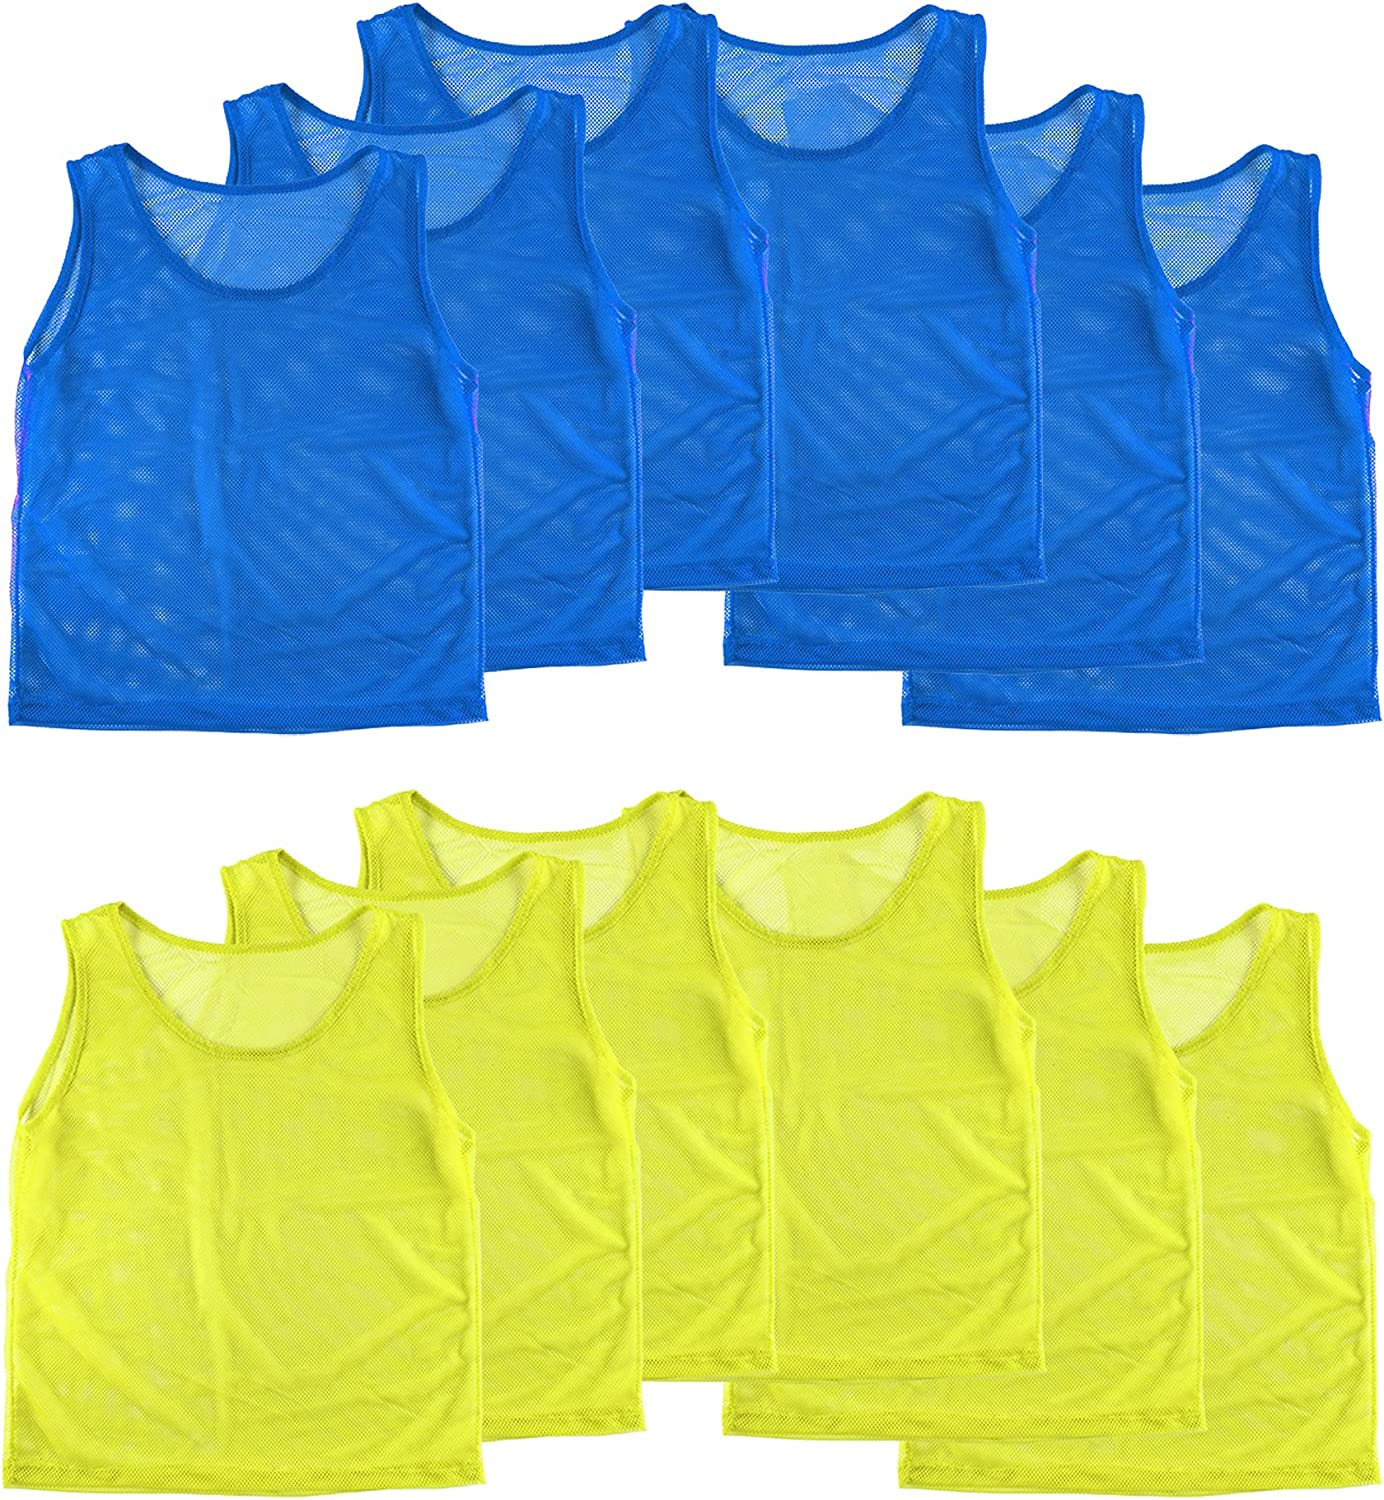 Nylon OFFicial shop Mesh Scrimmage Team Very popular Practice Jerseys Chi Vests for Pinnies